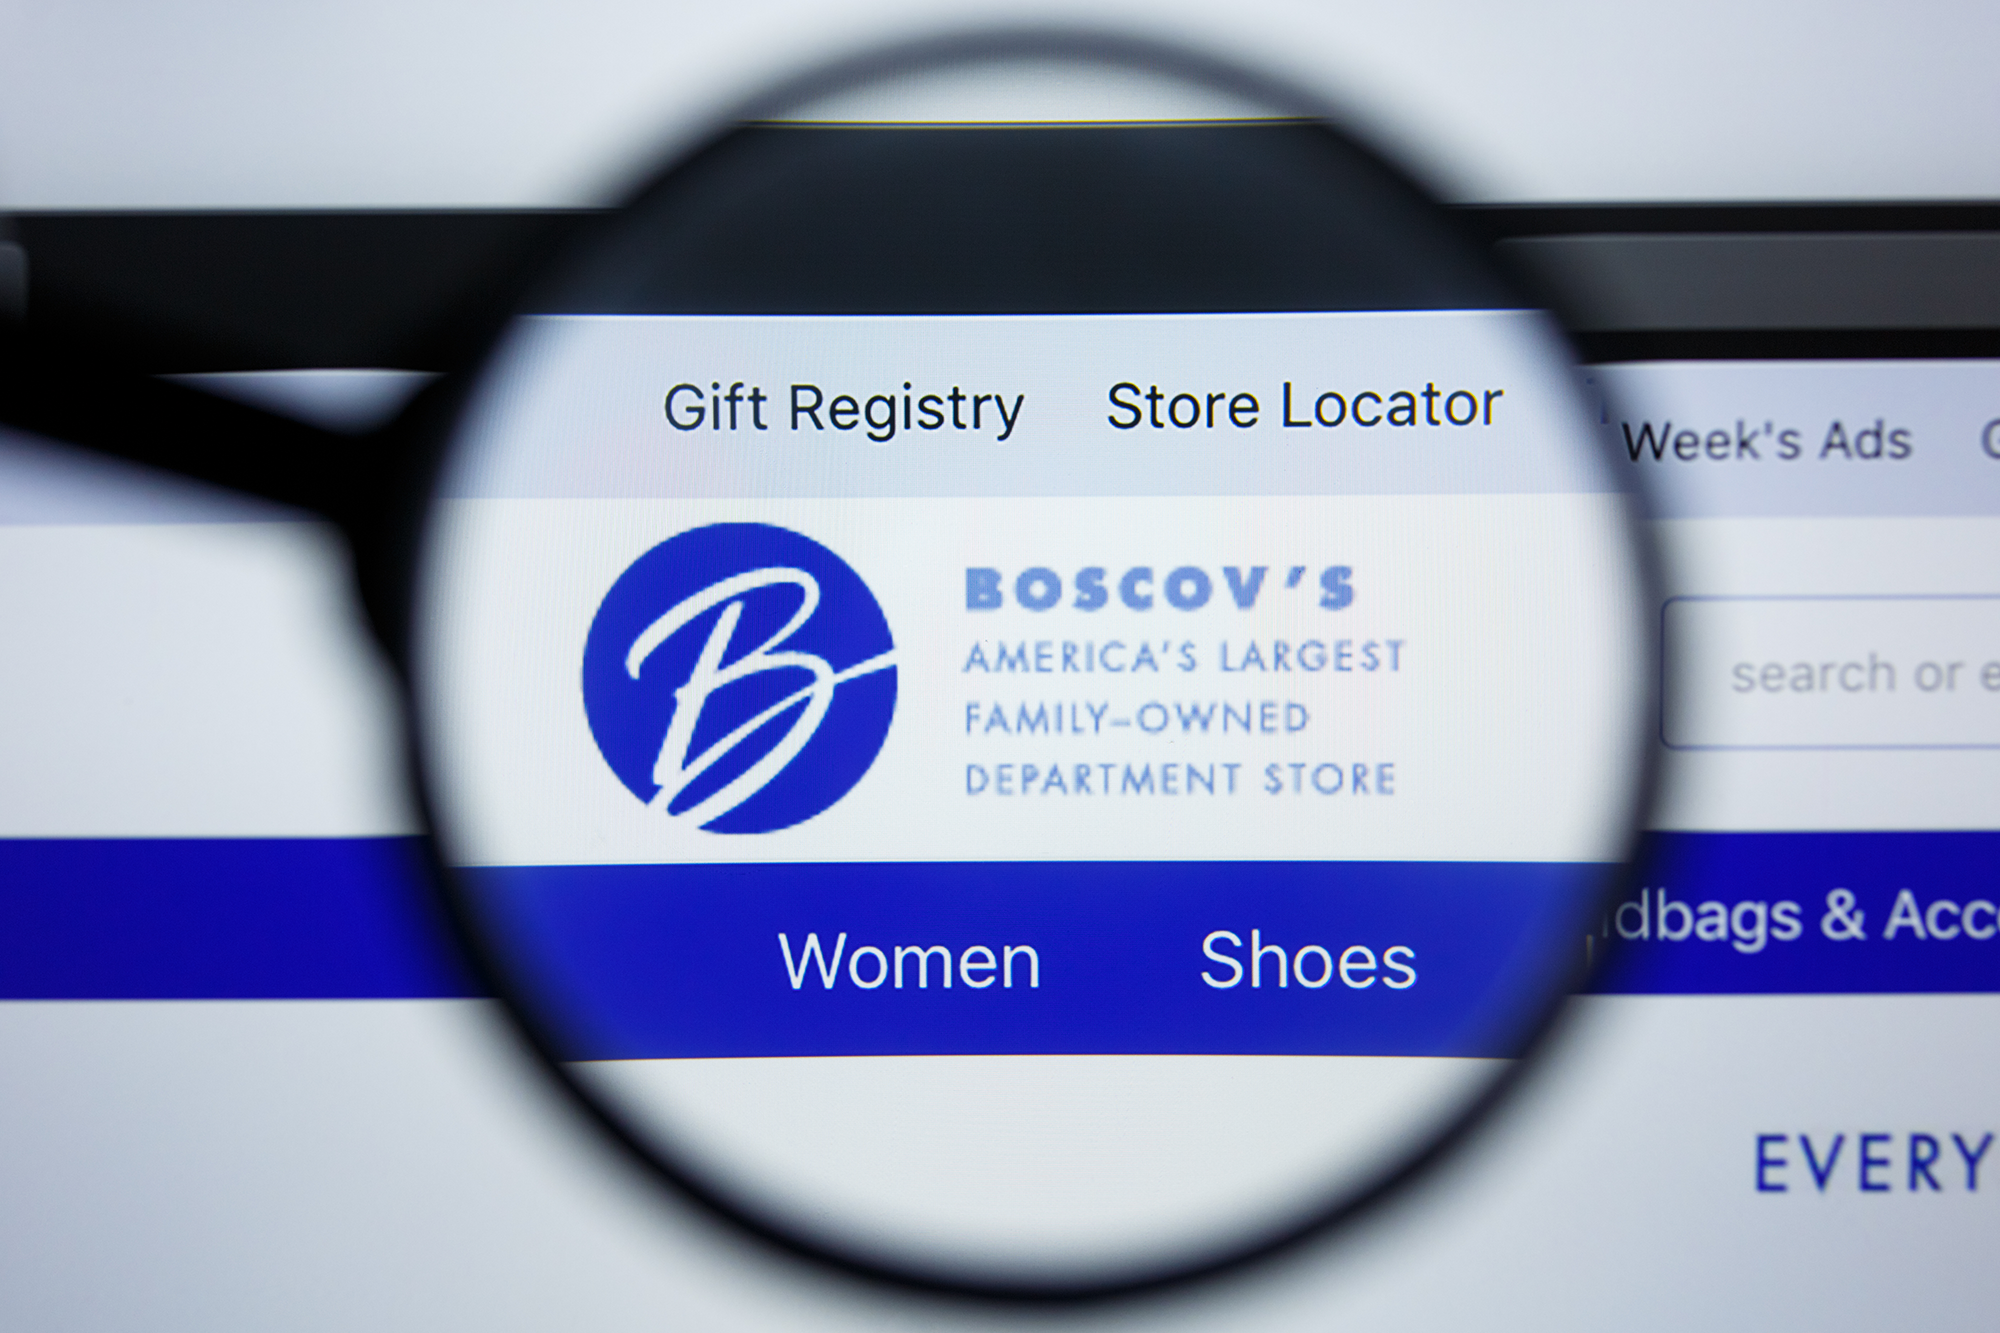 How To Sell Products On Boscov's